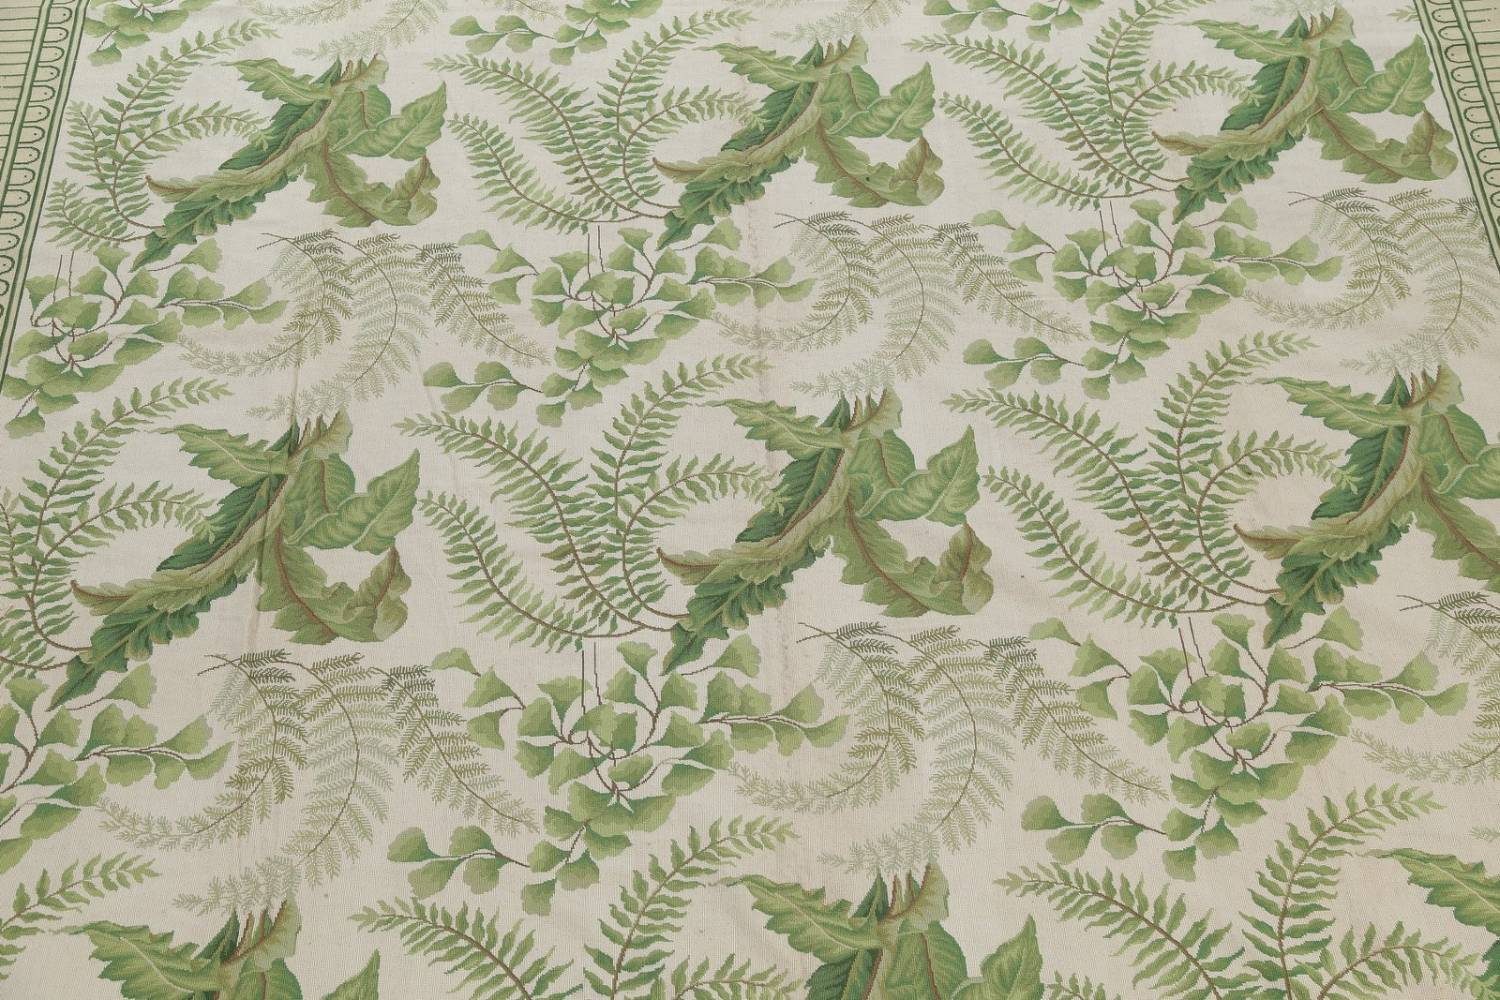 Mansion Floral Green Aubusson Savonnerie Needle-Point Chinese Wool Rug 11x16 image 4